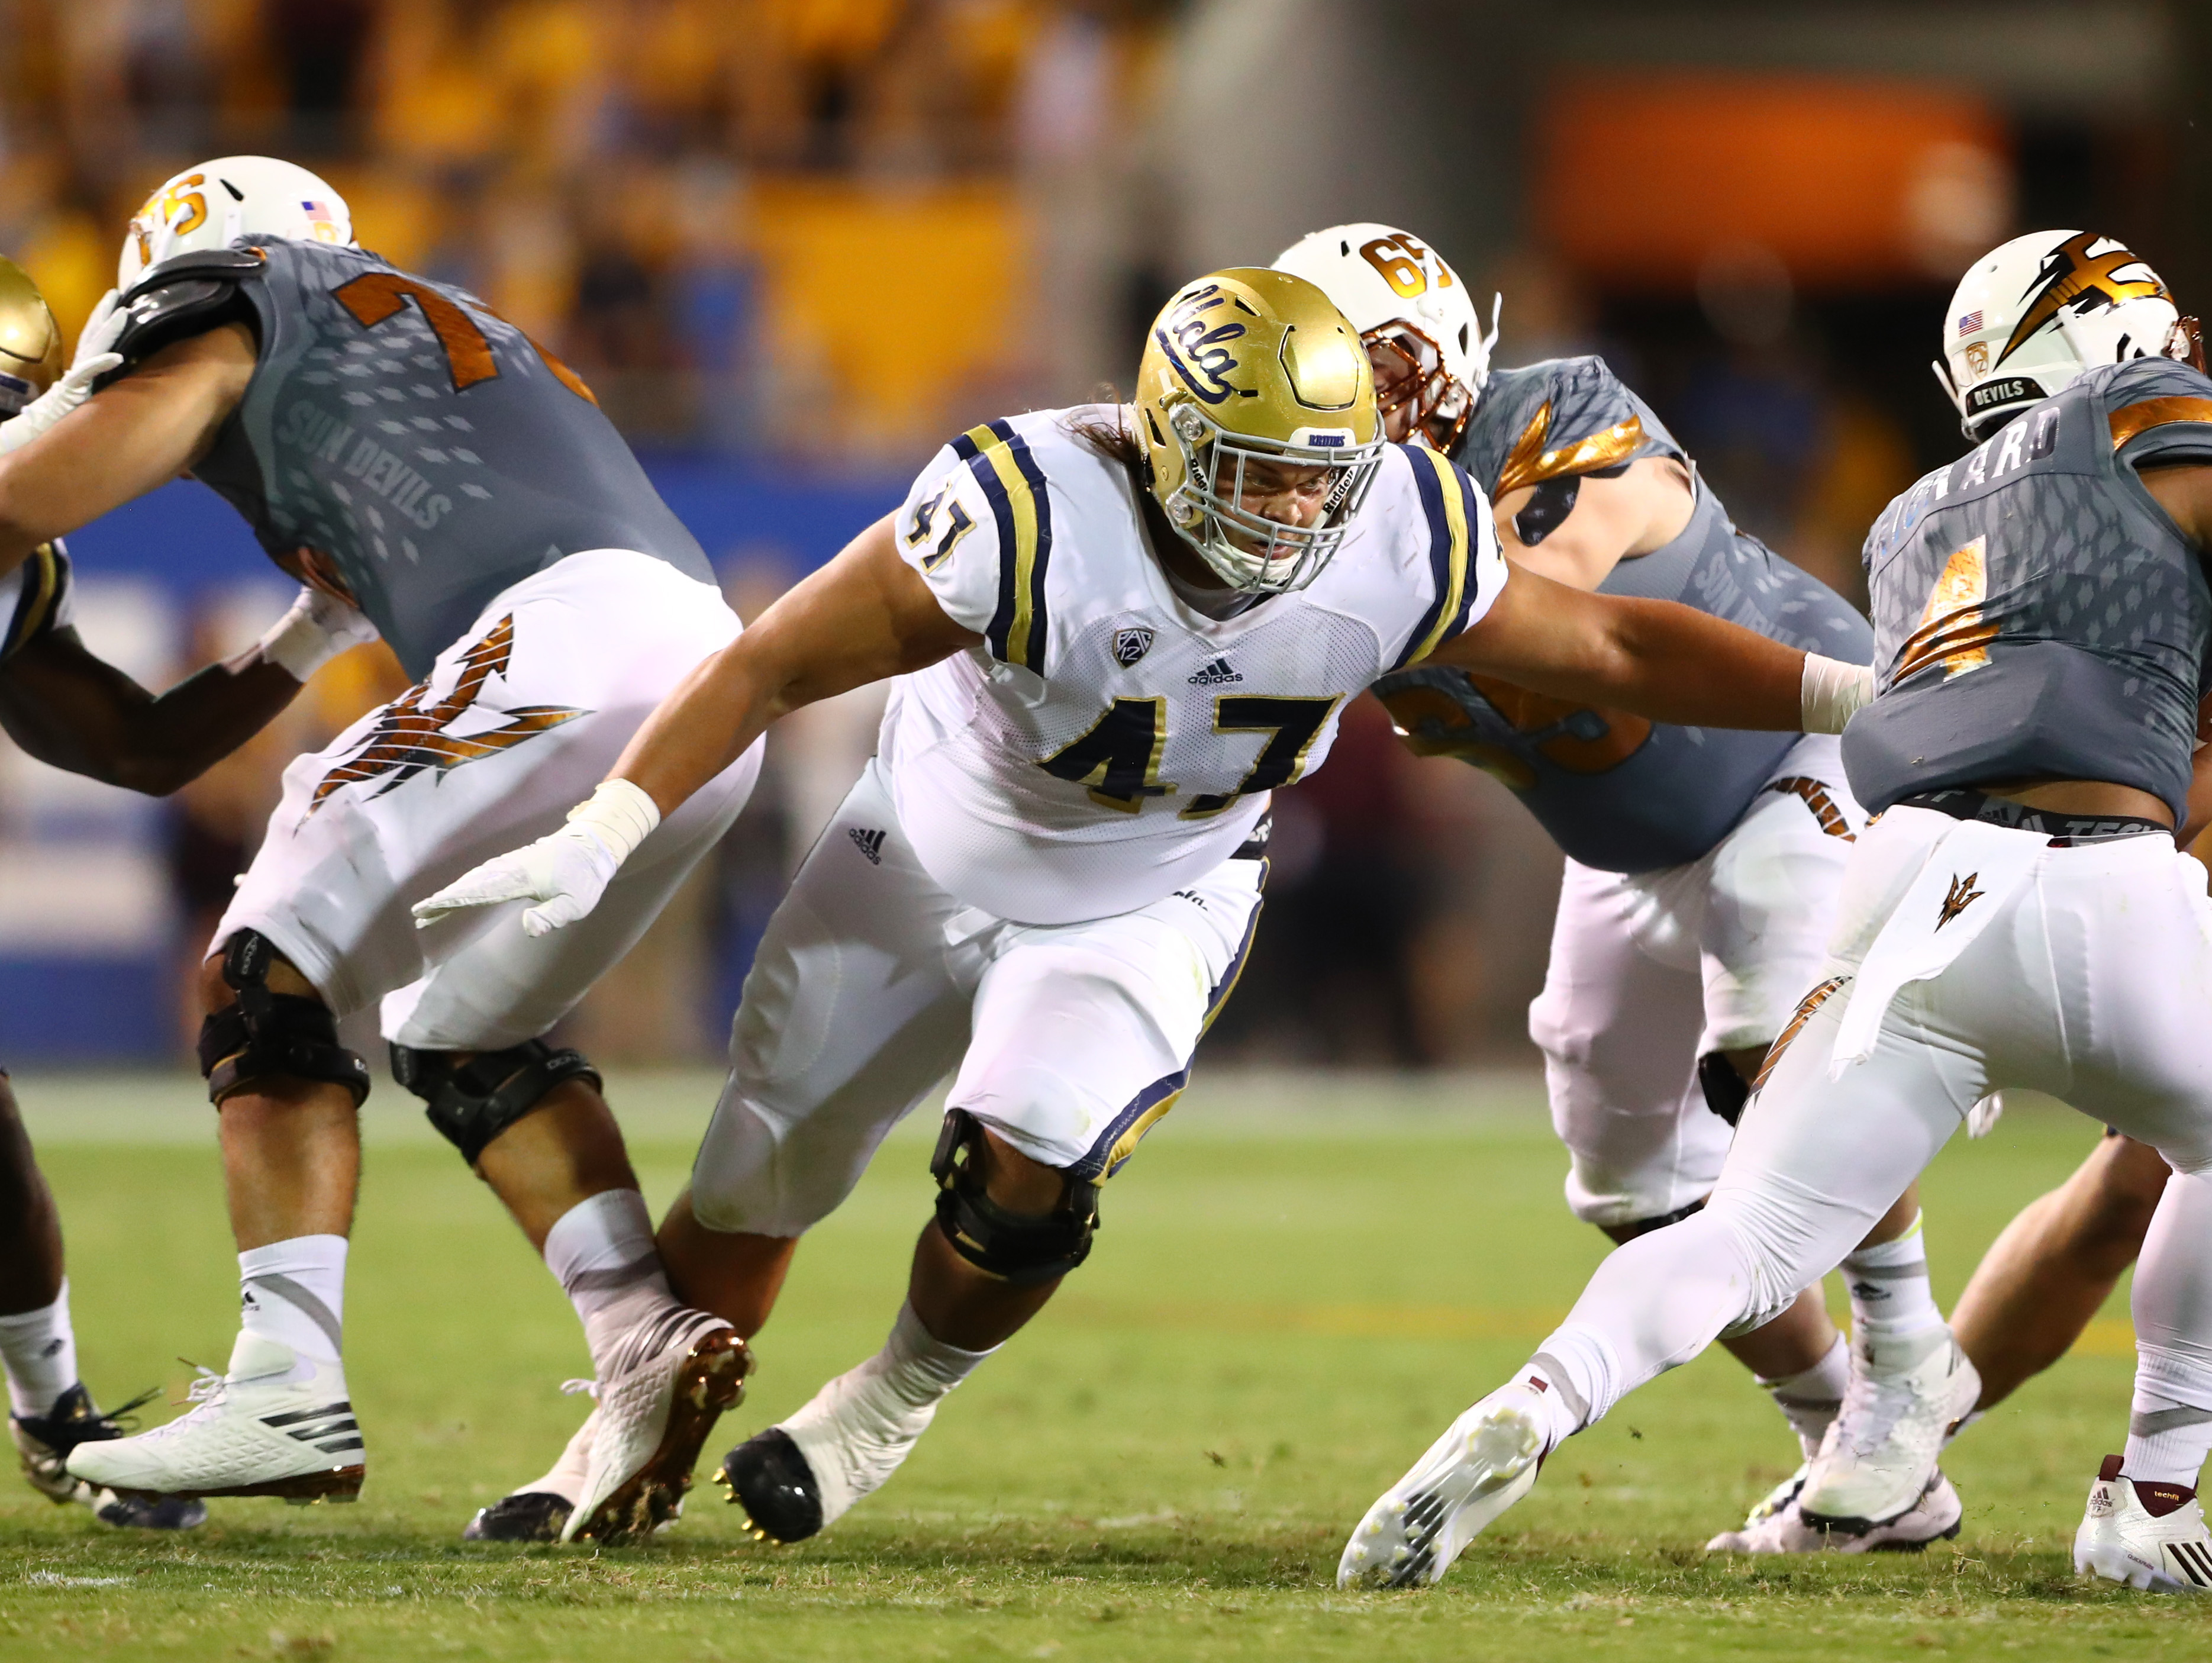 9597494-ncaa-football-ucla-at-arizona-state